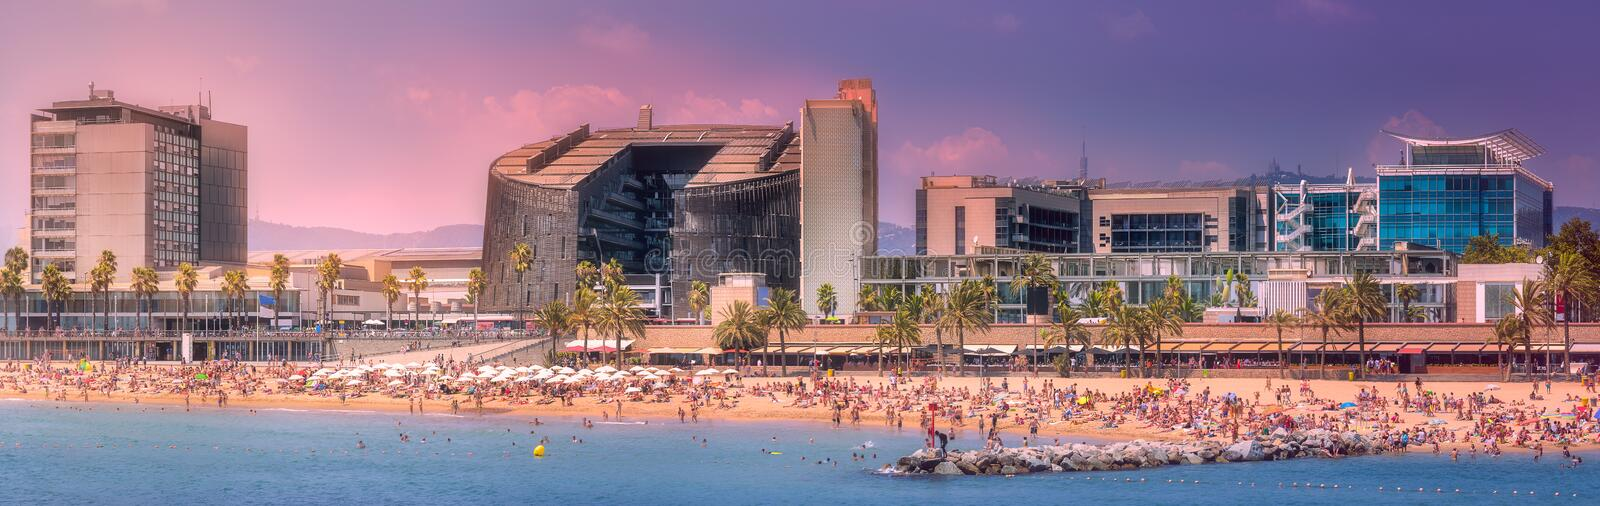 Barceloneta Beach in Barcelona at purple sunset royalty free stock photo